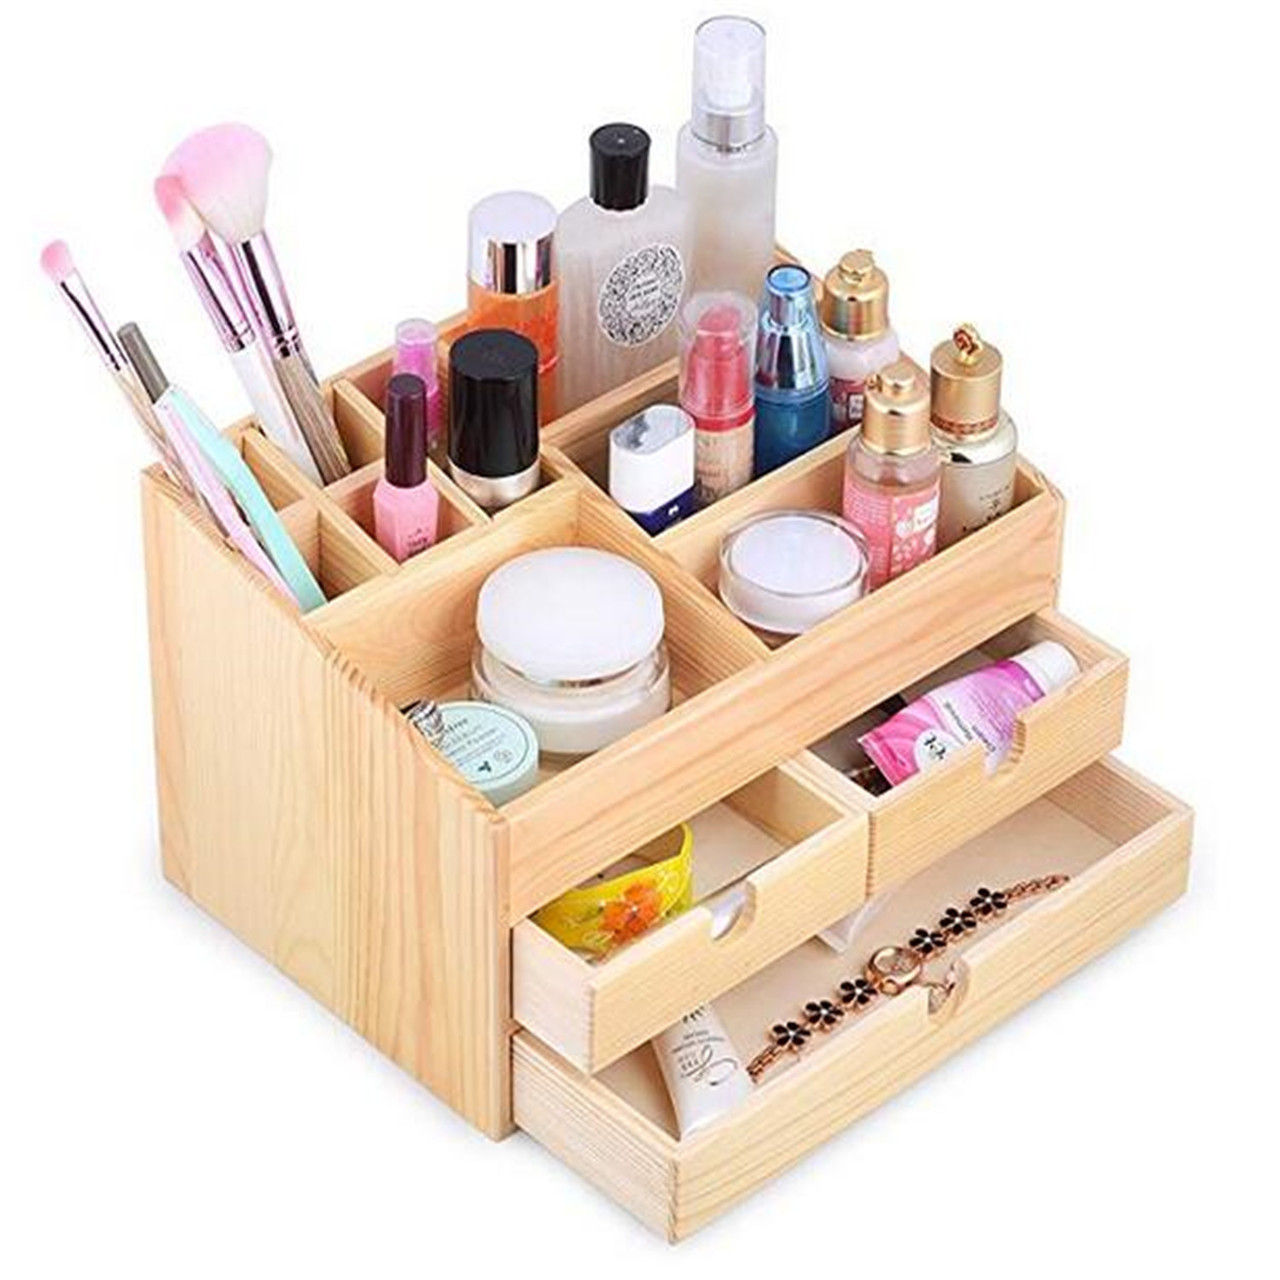 Kendal Wooden Desktop makeup cosmetic Organizer Display Box case with  Storage Drawers WSB48PC